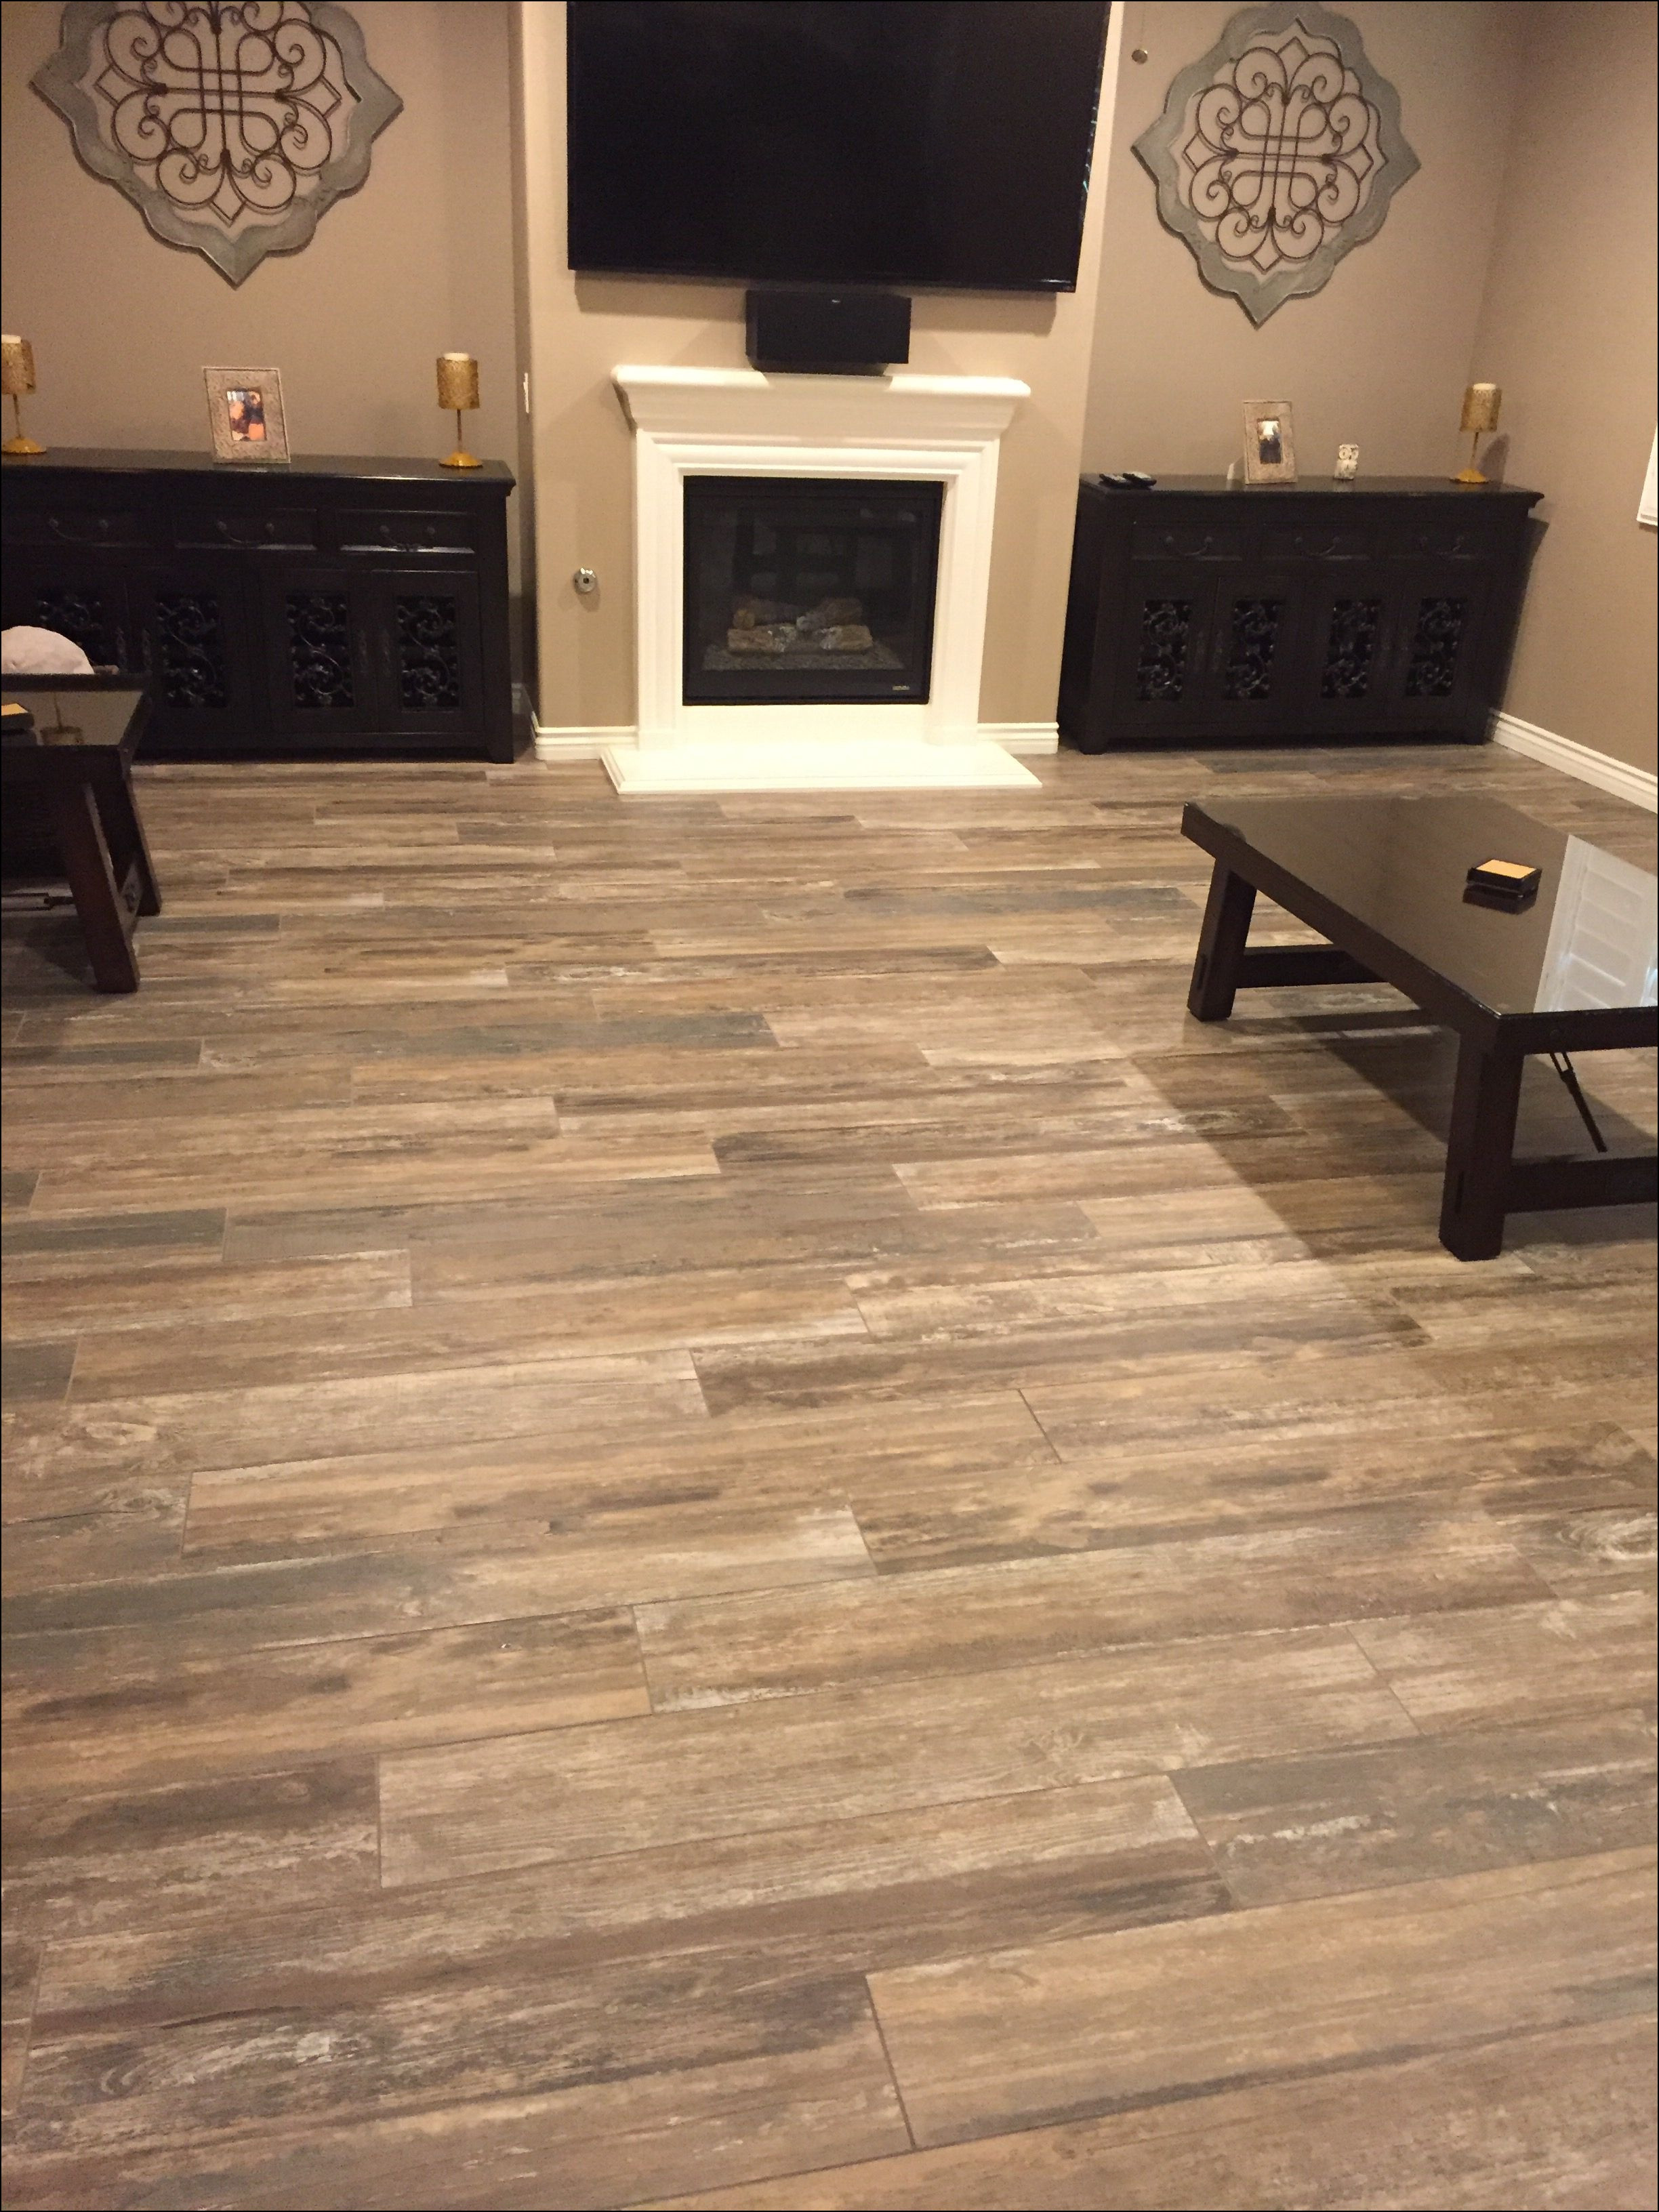 vinyl hardwood flooring installation of hardwood flooring suppliers france flooring ideas pertaining to hardwood flooring installation san diego stock cork flooring in an historic southern inn of hardwood flooring